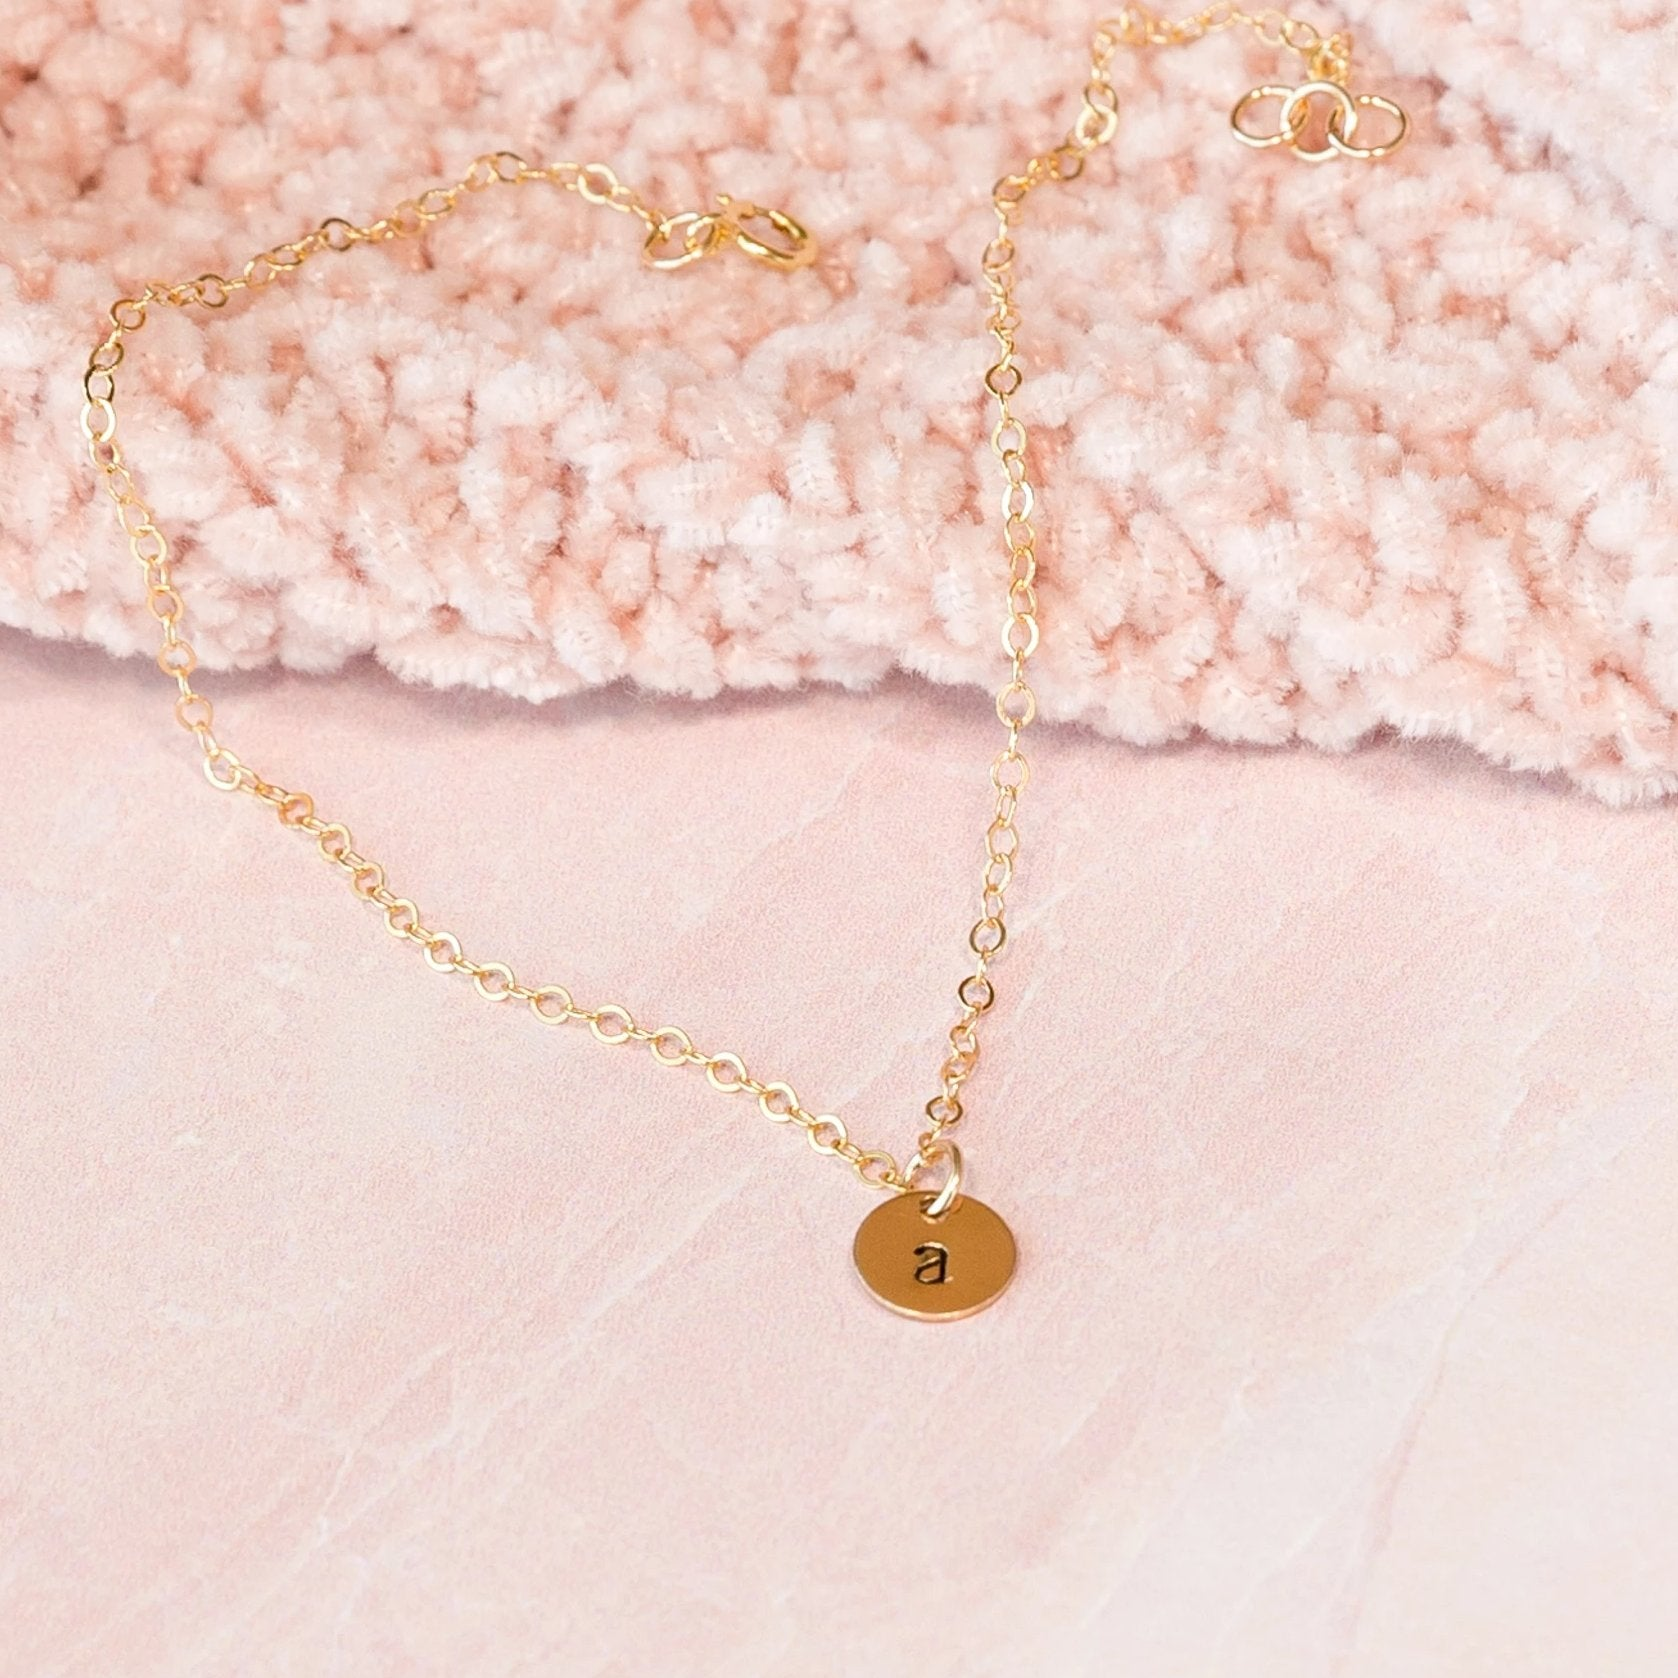 Sterling silver or gold personalized initial charm anklet